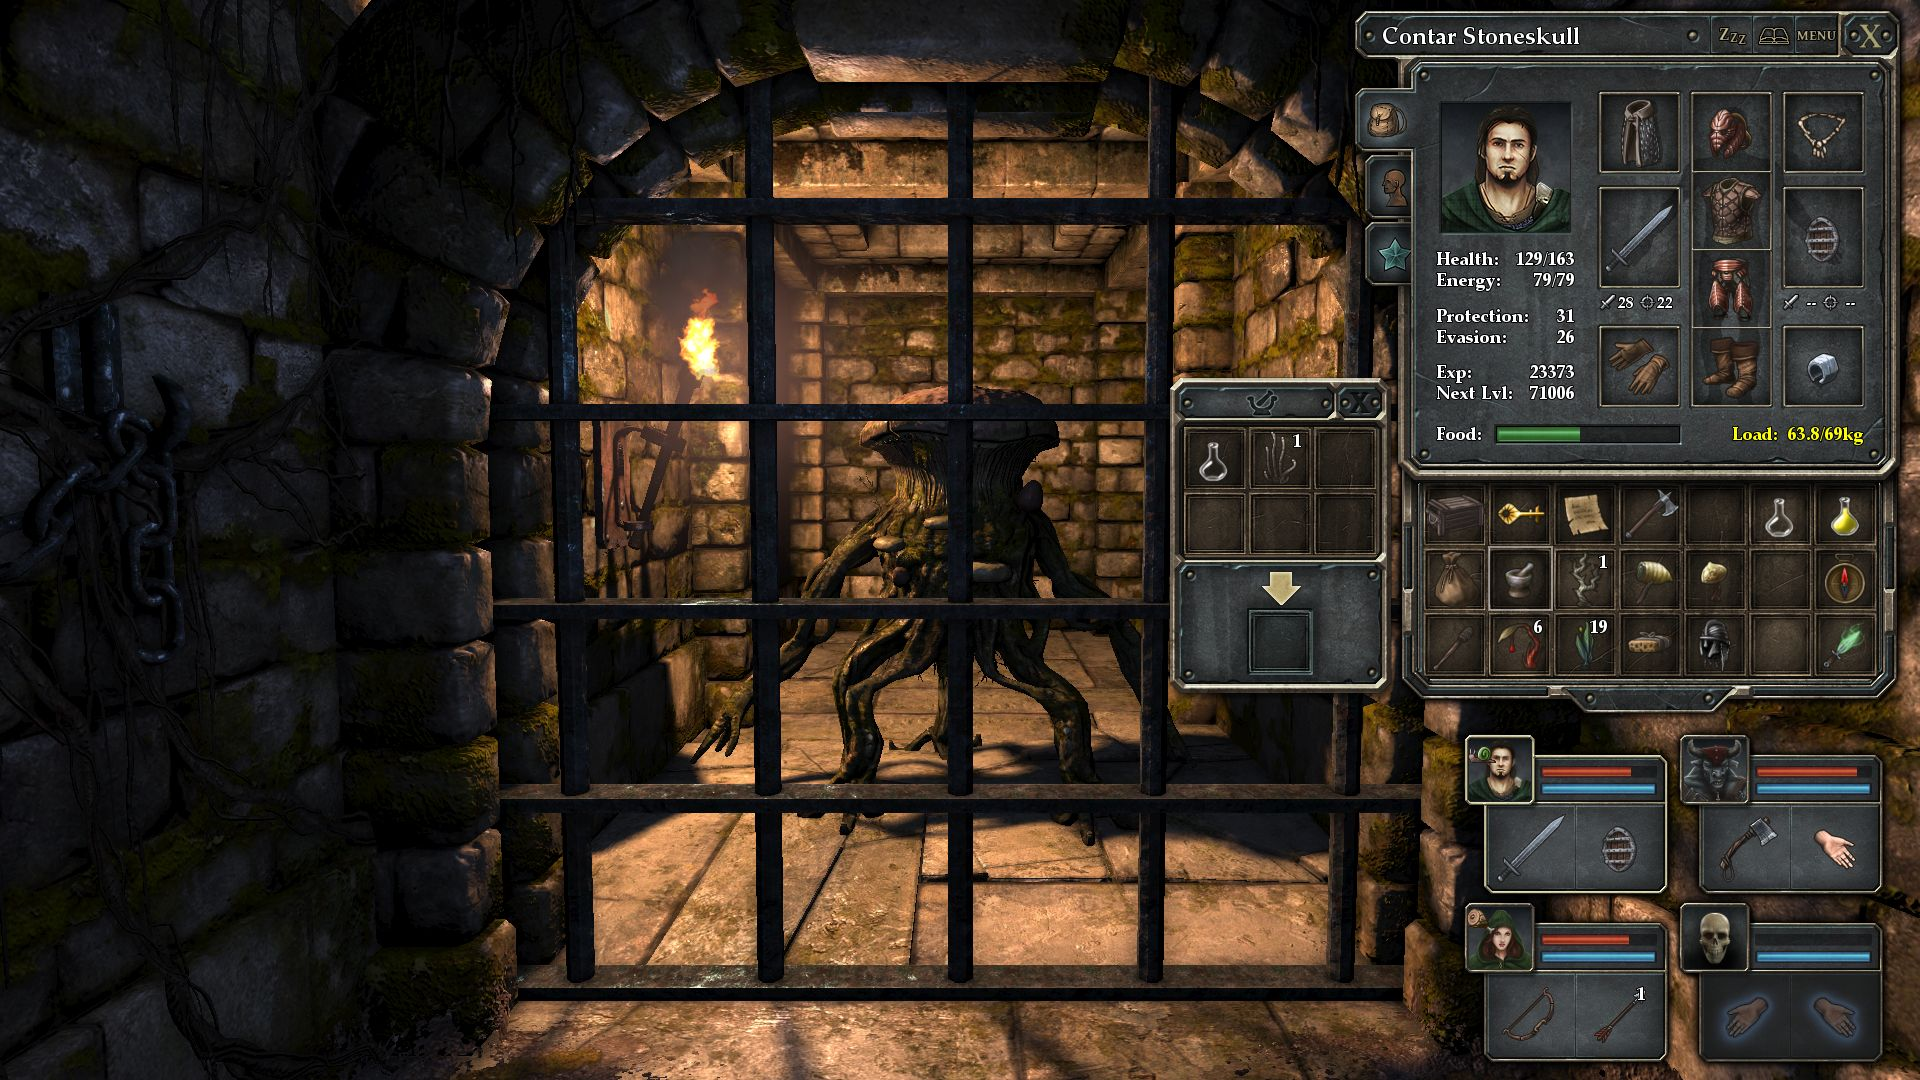 IMAGE(https://upload.wikimedia.org/wikipedia/commons/1/14/Legend_of_Grimrock_screenshot_01.jpg)